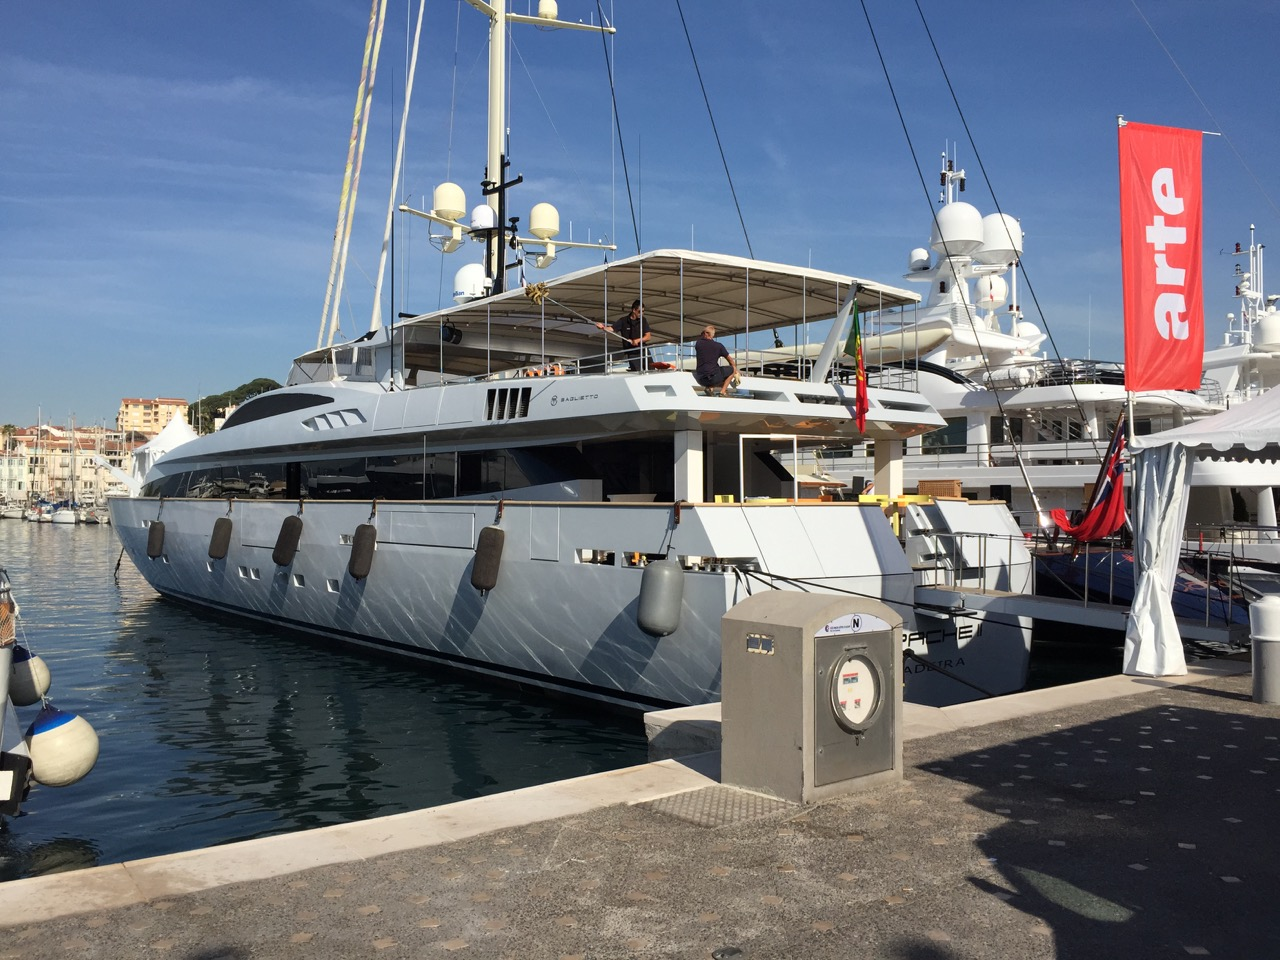 Last minute preparations on board this Baglietto for Cannes 2015